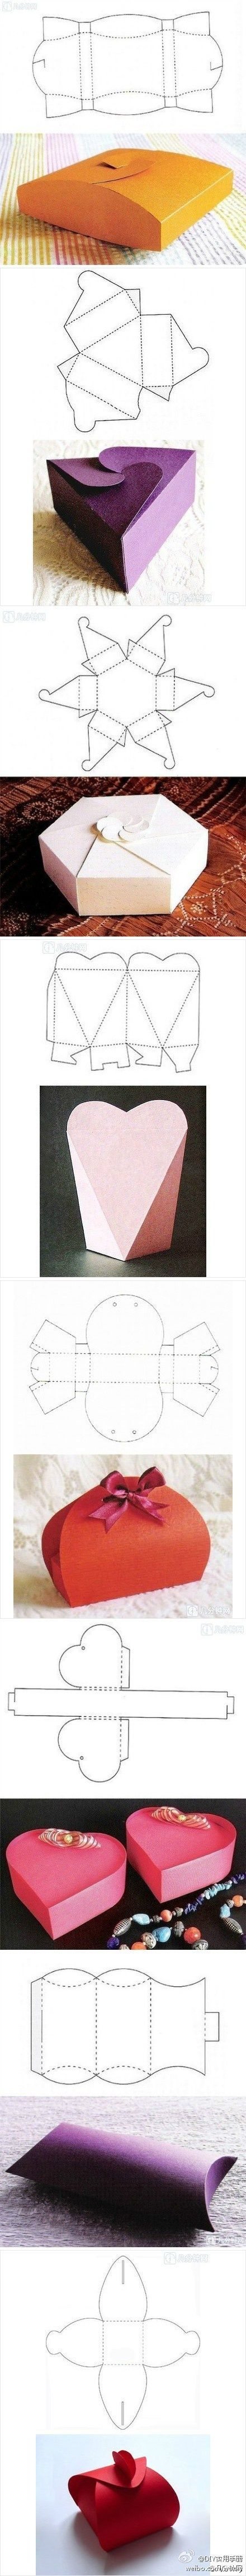 Shaped Gift Box Patterns